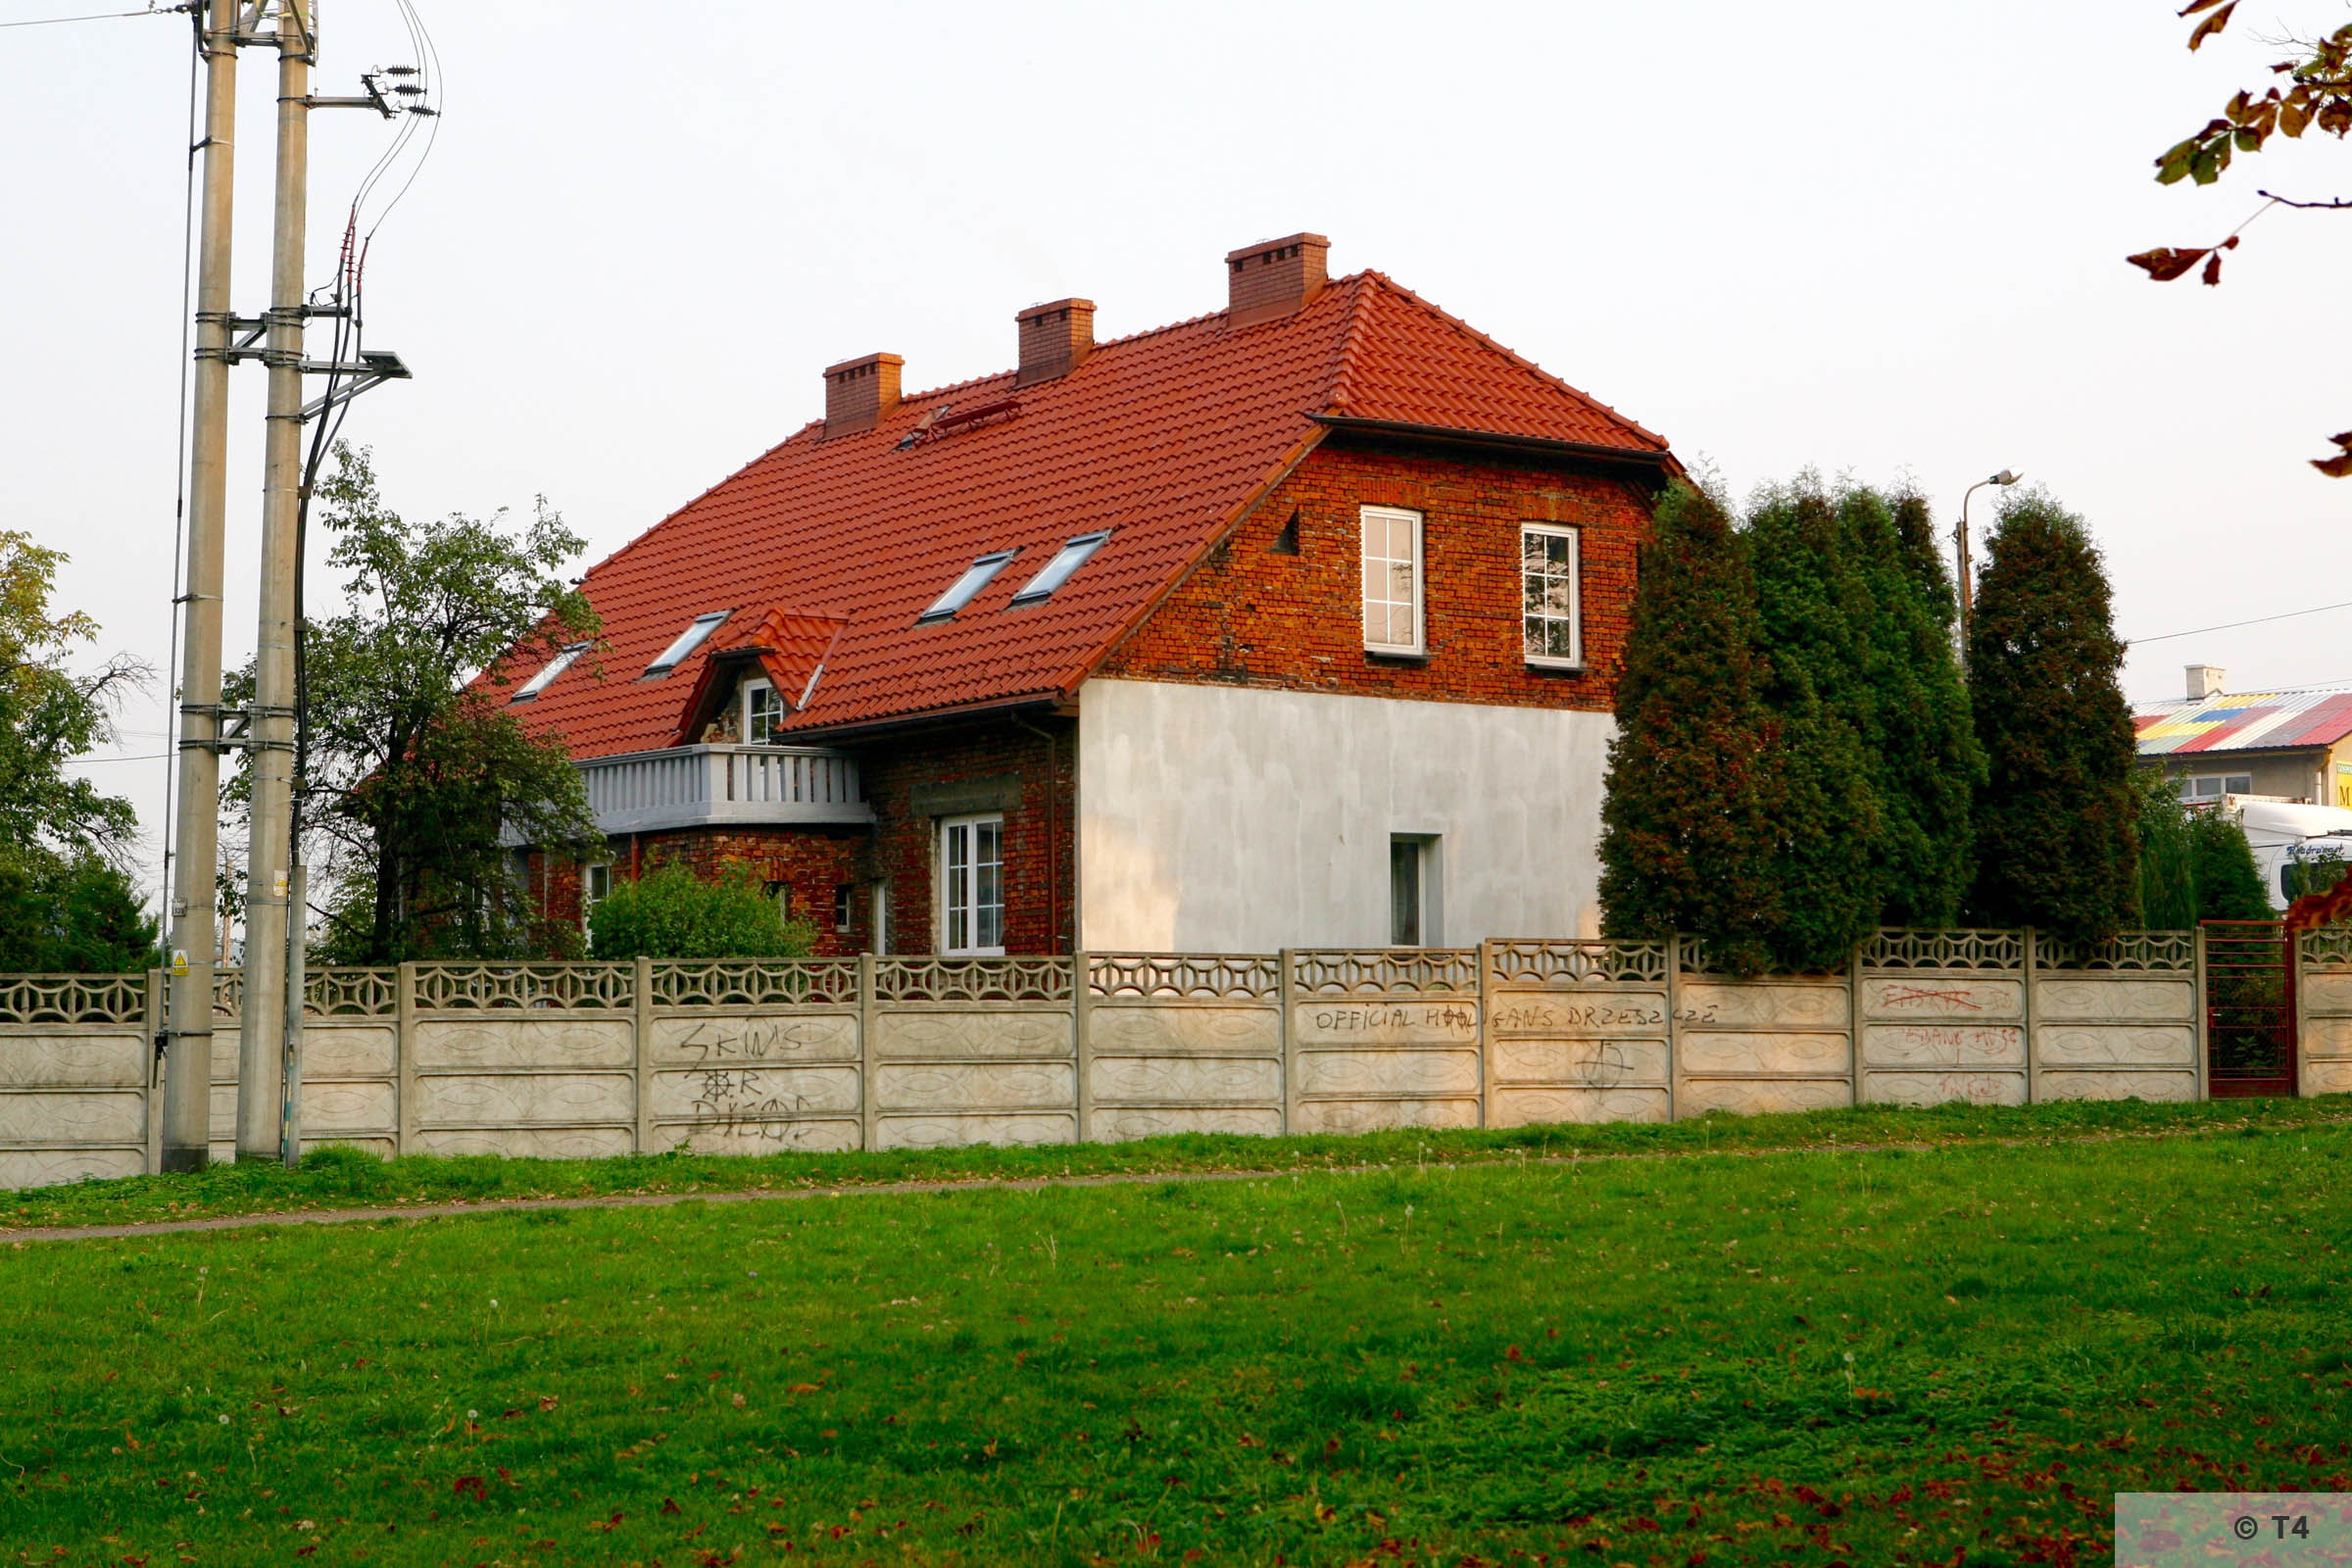 Houses near the area of the former sub camp Jawischowitz. 2007 T4 2193